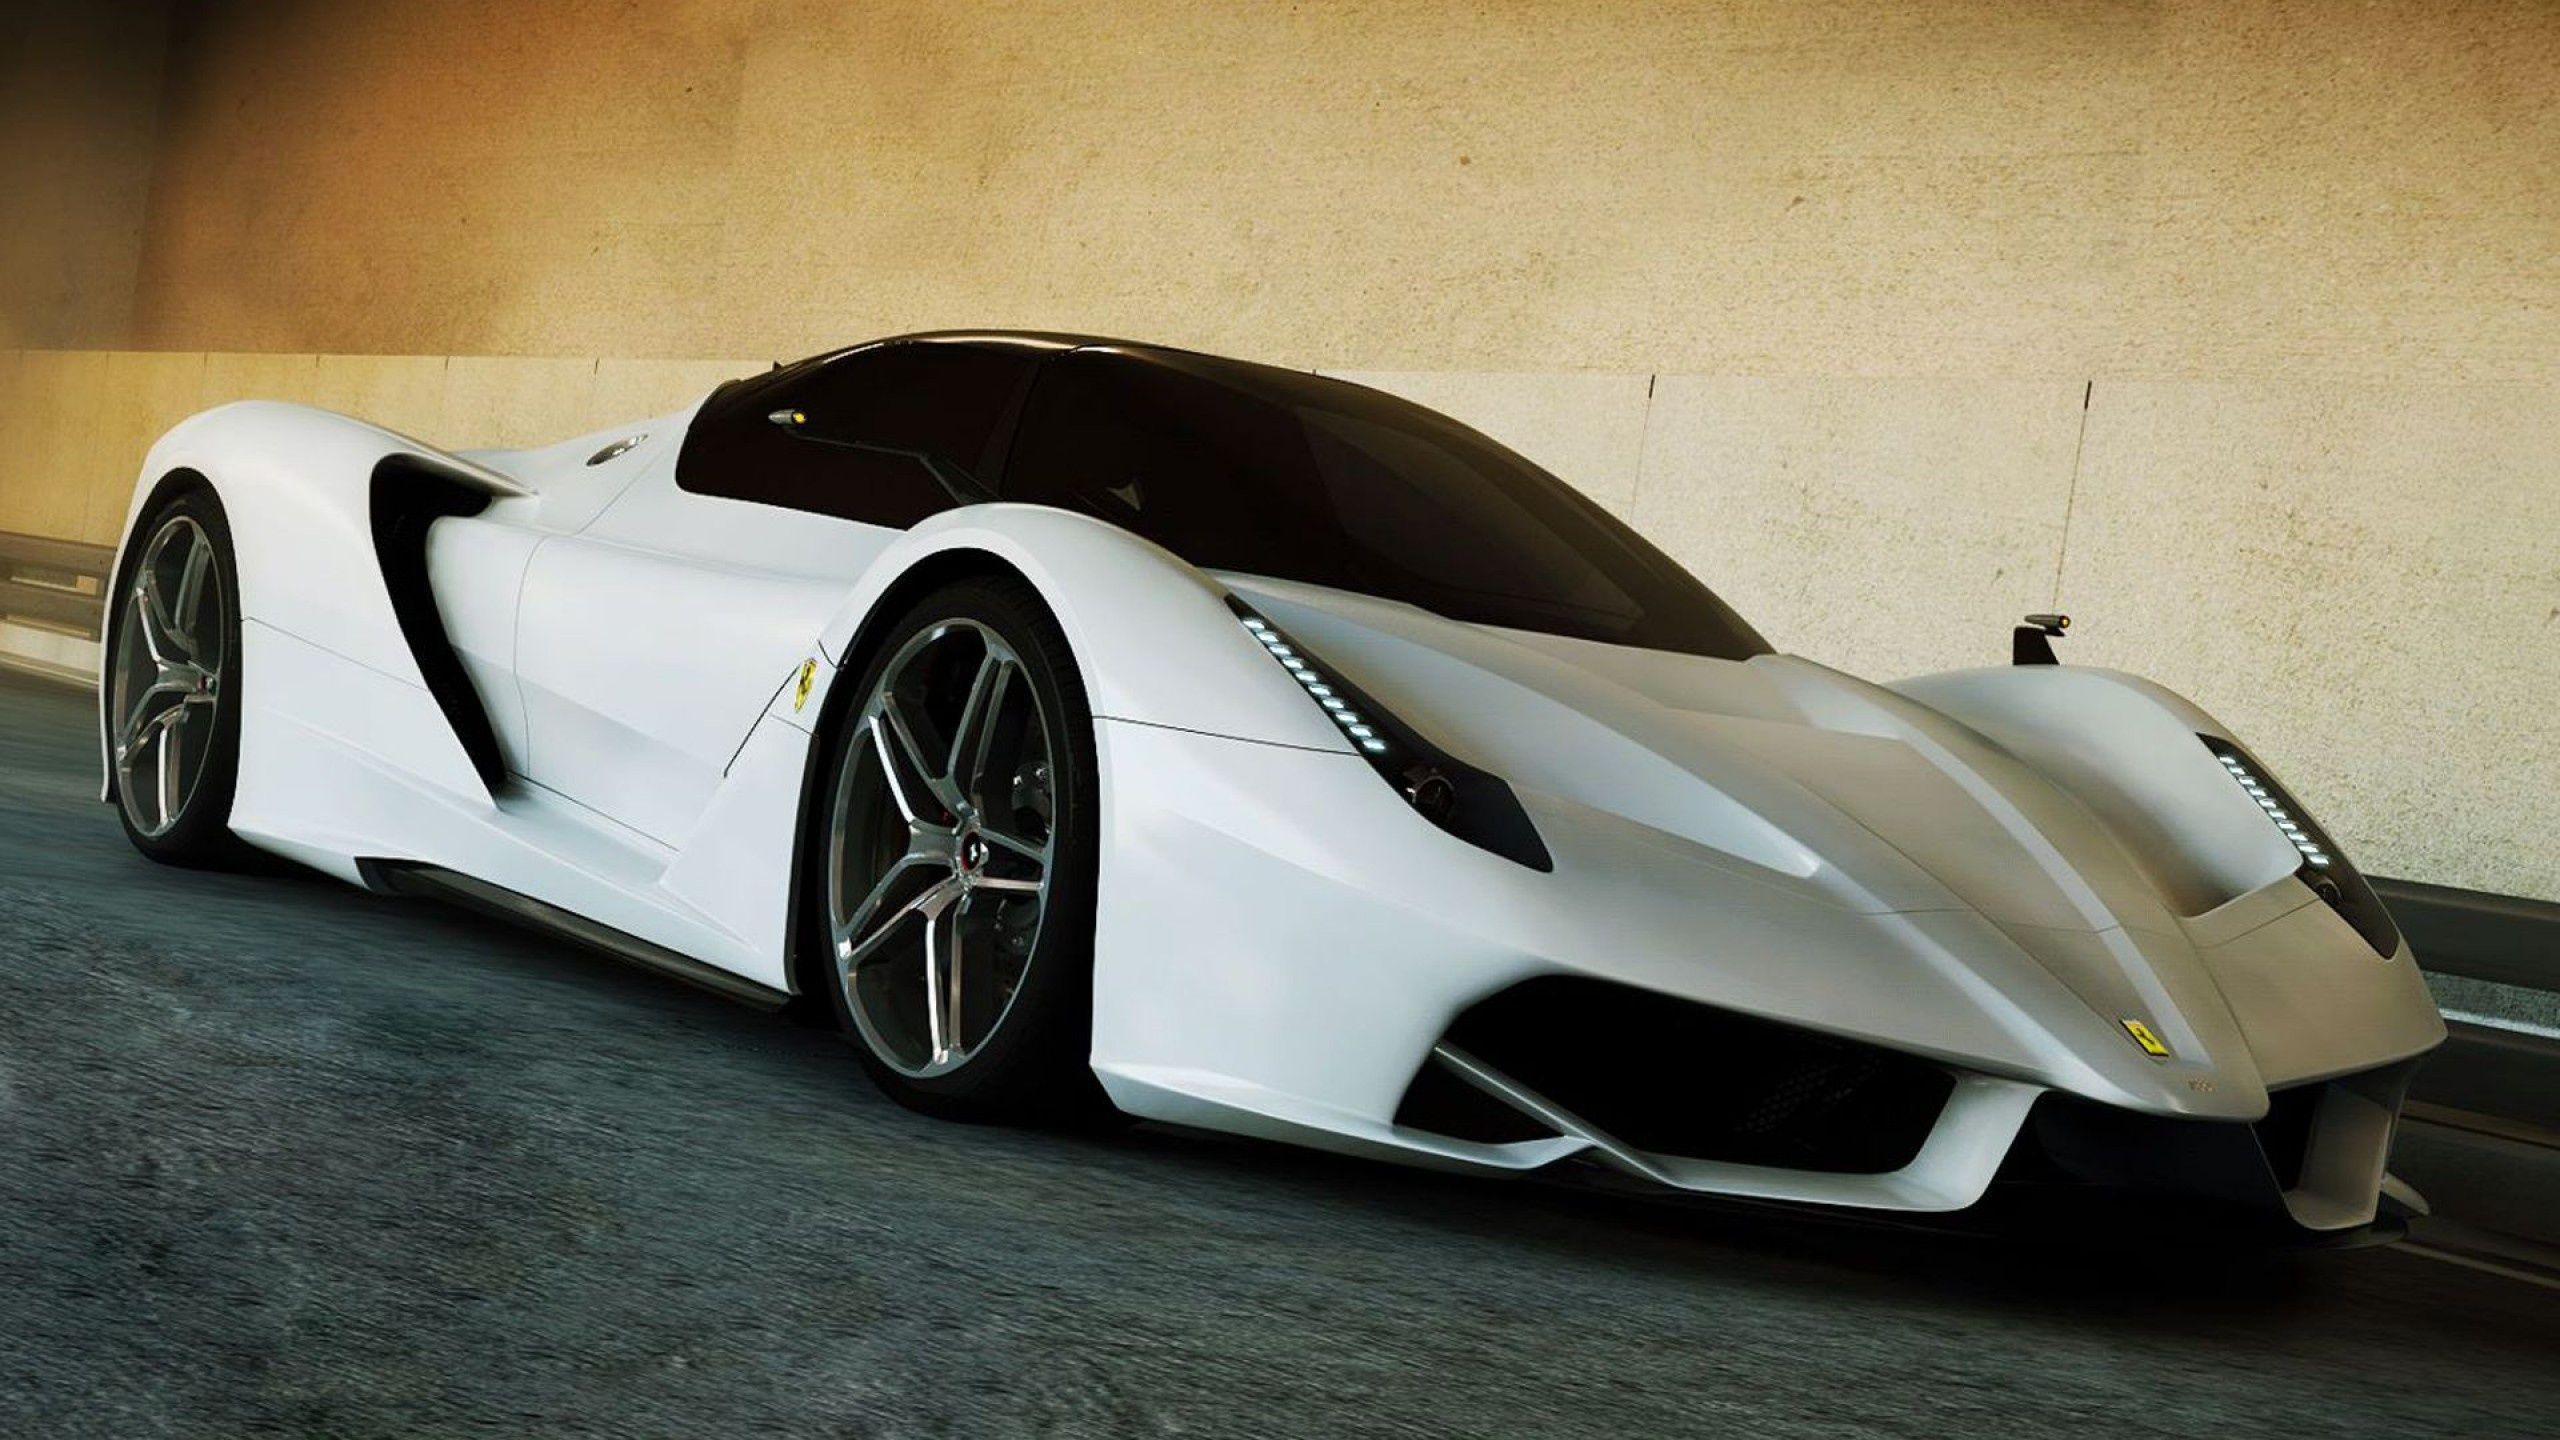 Ferrari De Esfera Concept Car Wallpaper With Id Desktop